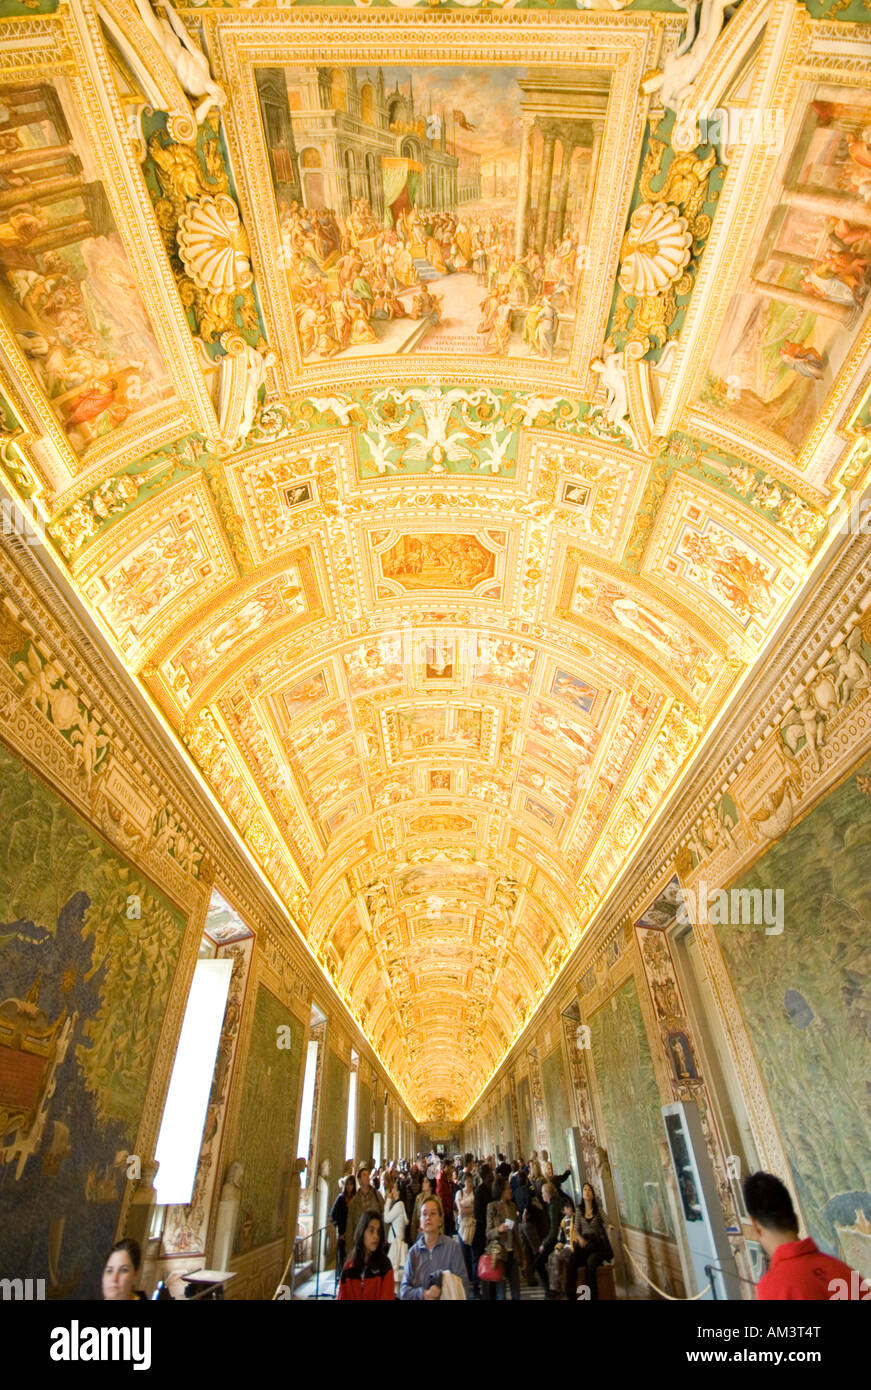 The Gallery of Maps in the Vatican Museum Rome Italy - Stock Image